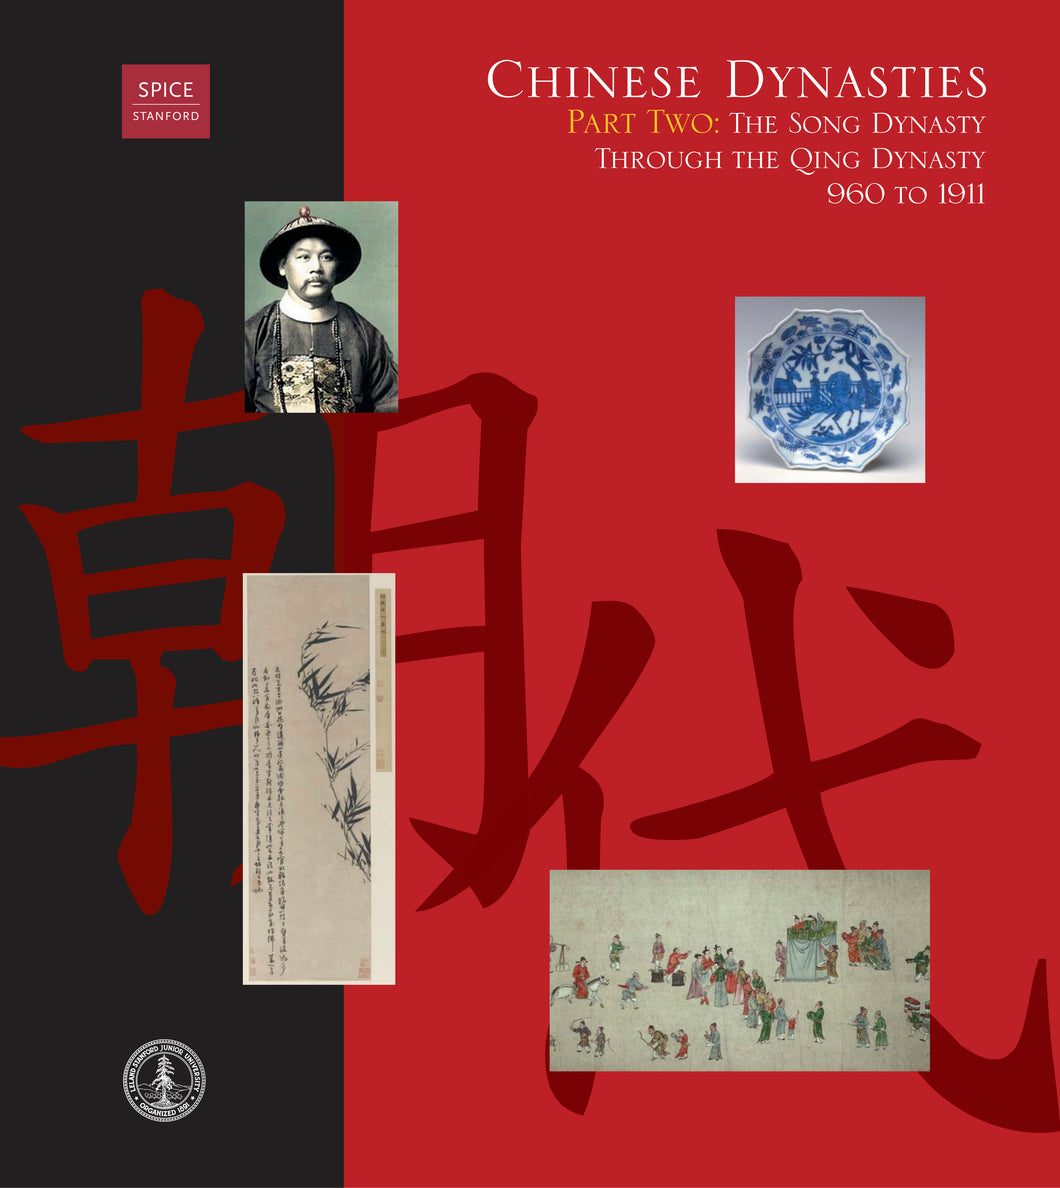 Chinese Dynasties Part Two: The Song Dynasty through the Qing Dynasty, 960 to 1911 CE